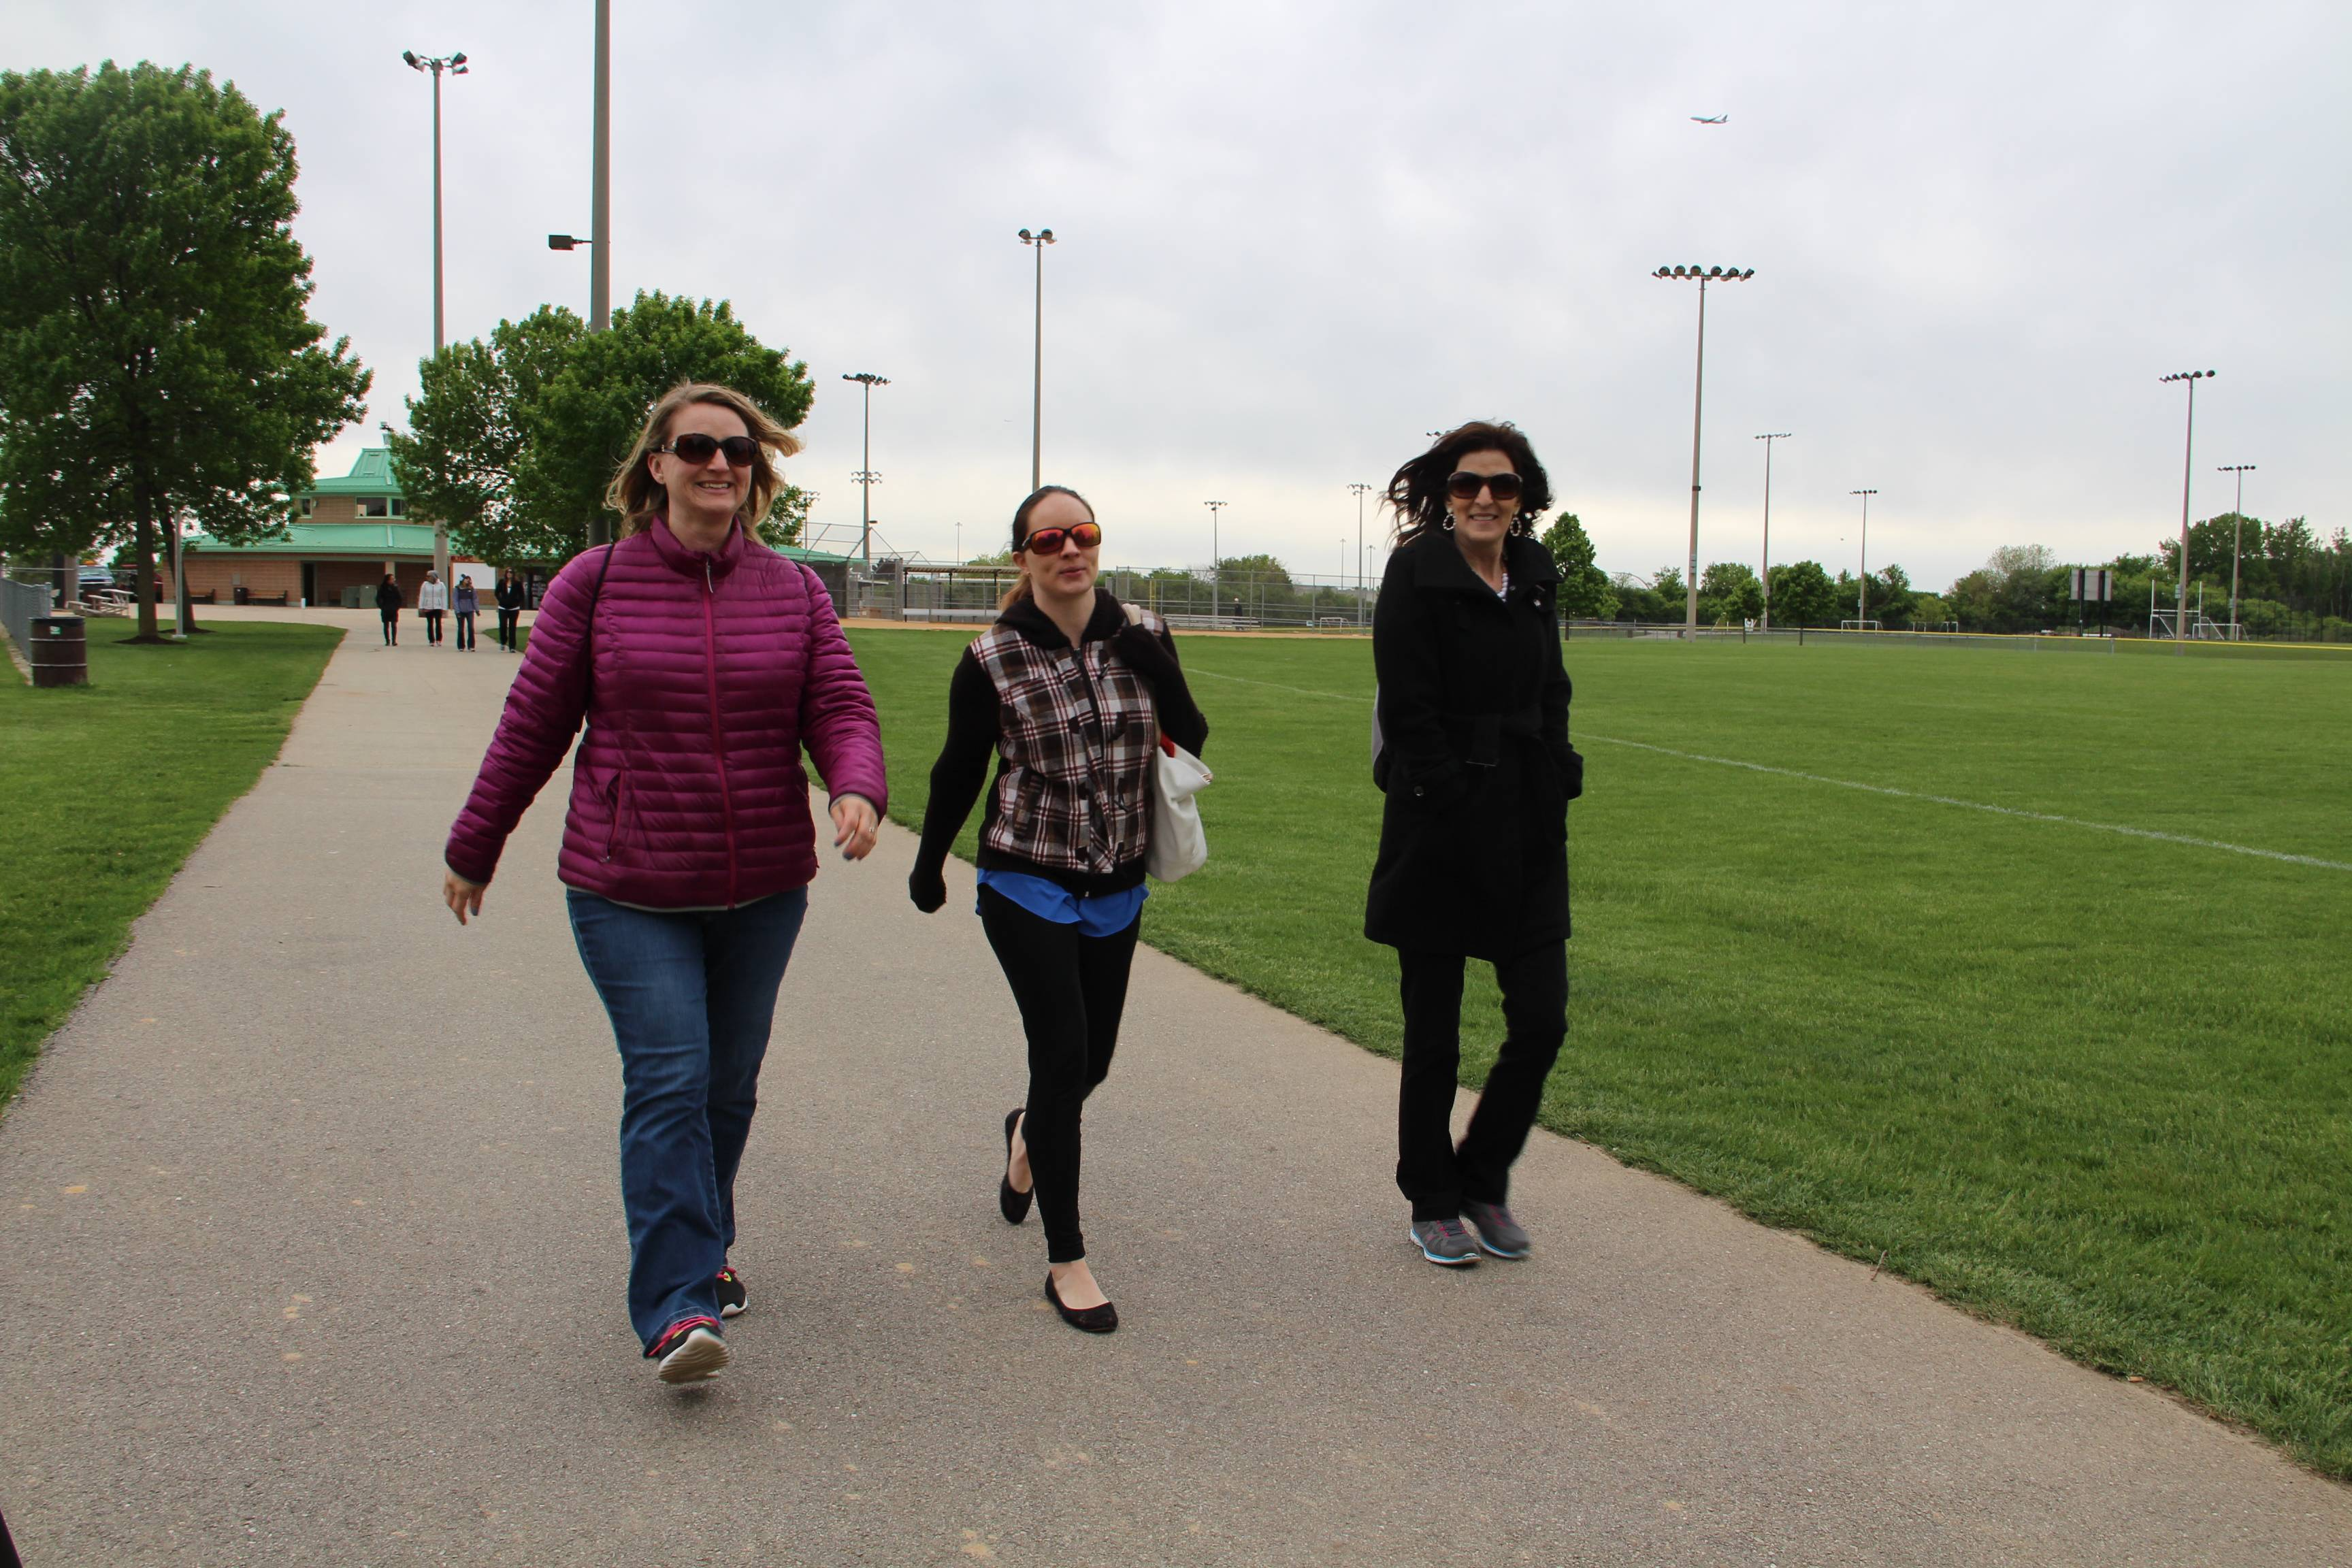 The 29th Annual Employee Fitness Walk features lunch, prizes and entertainment. Schaumburg Park District